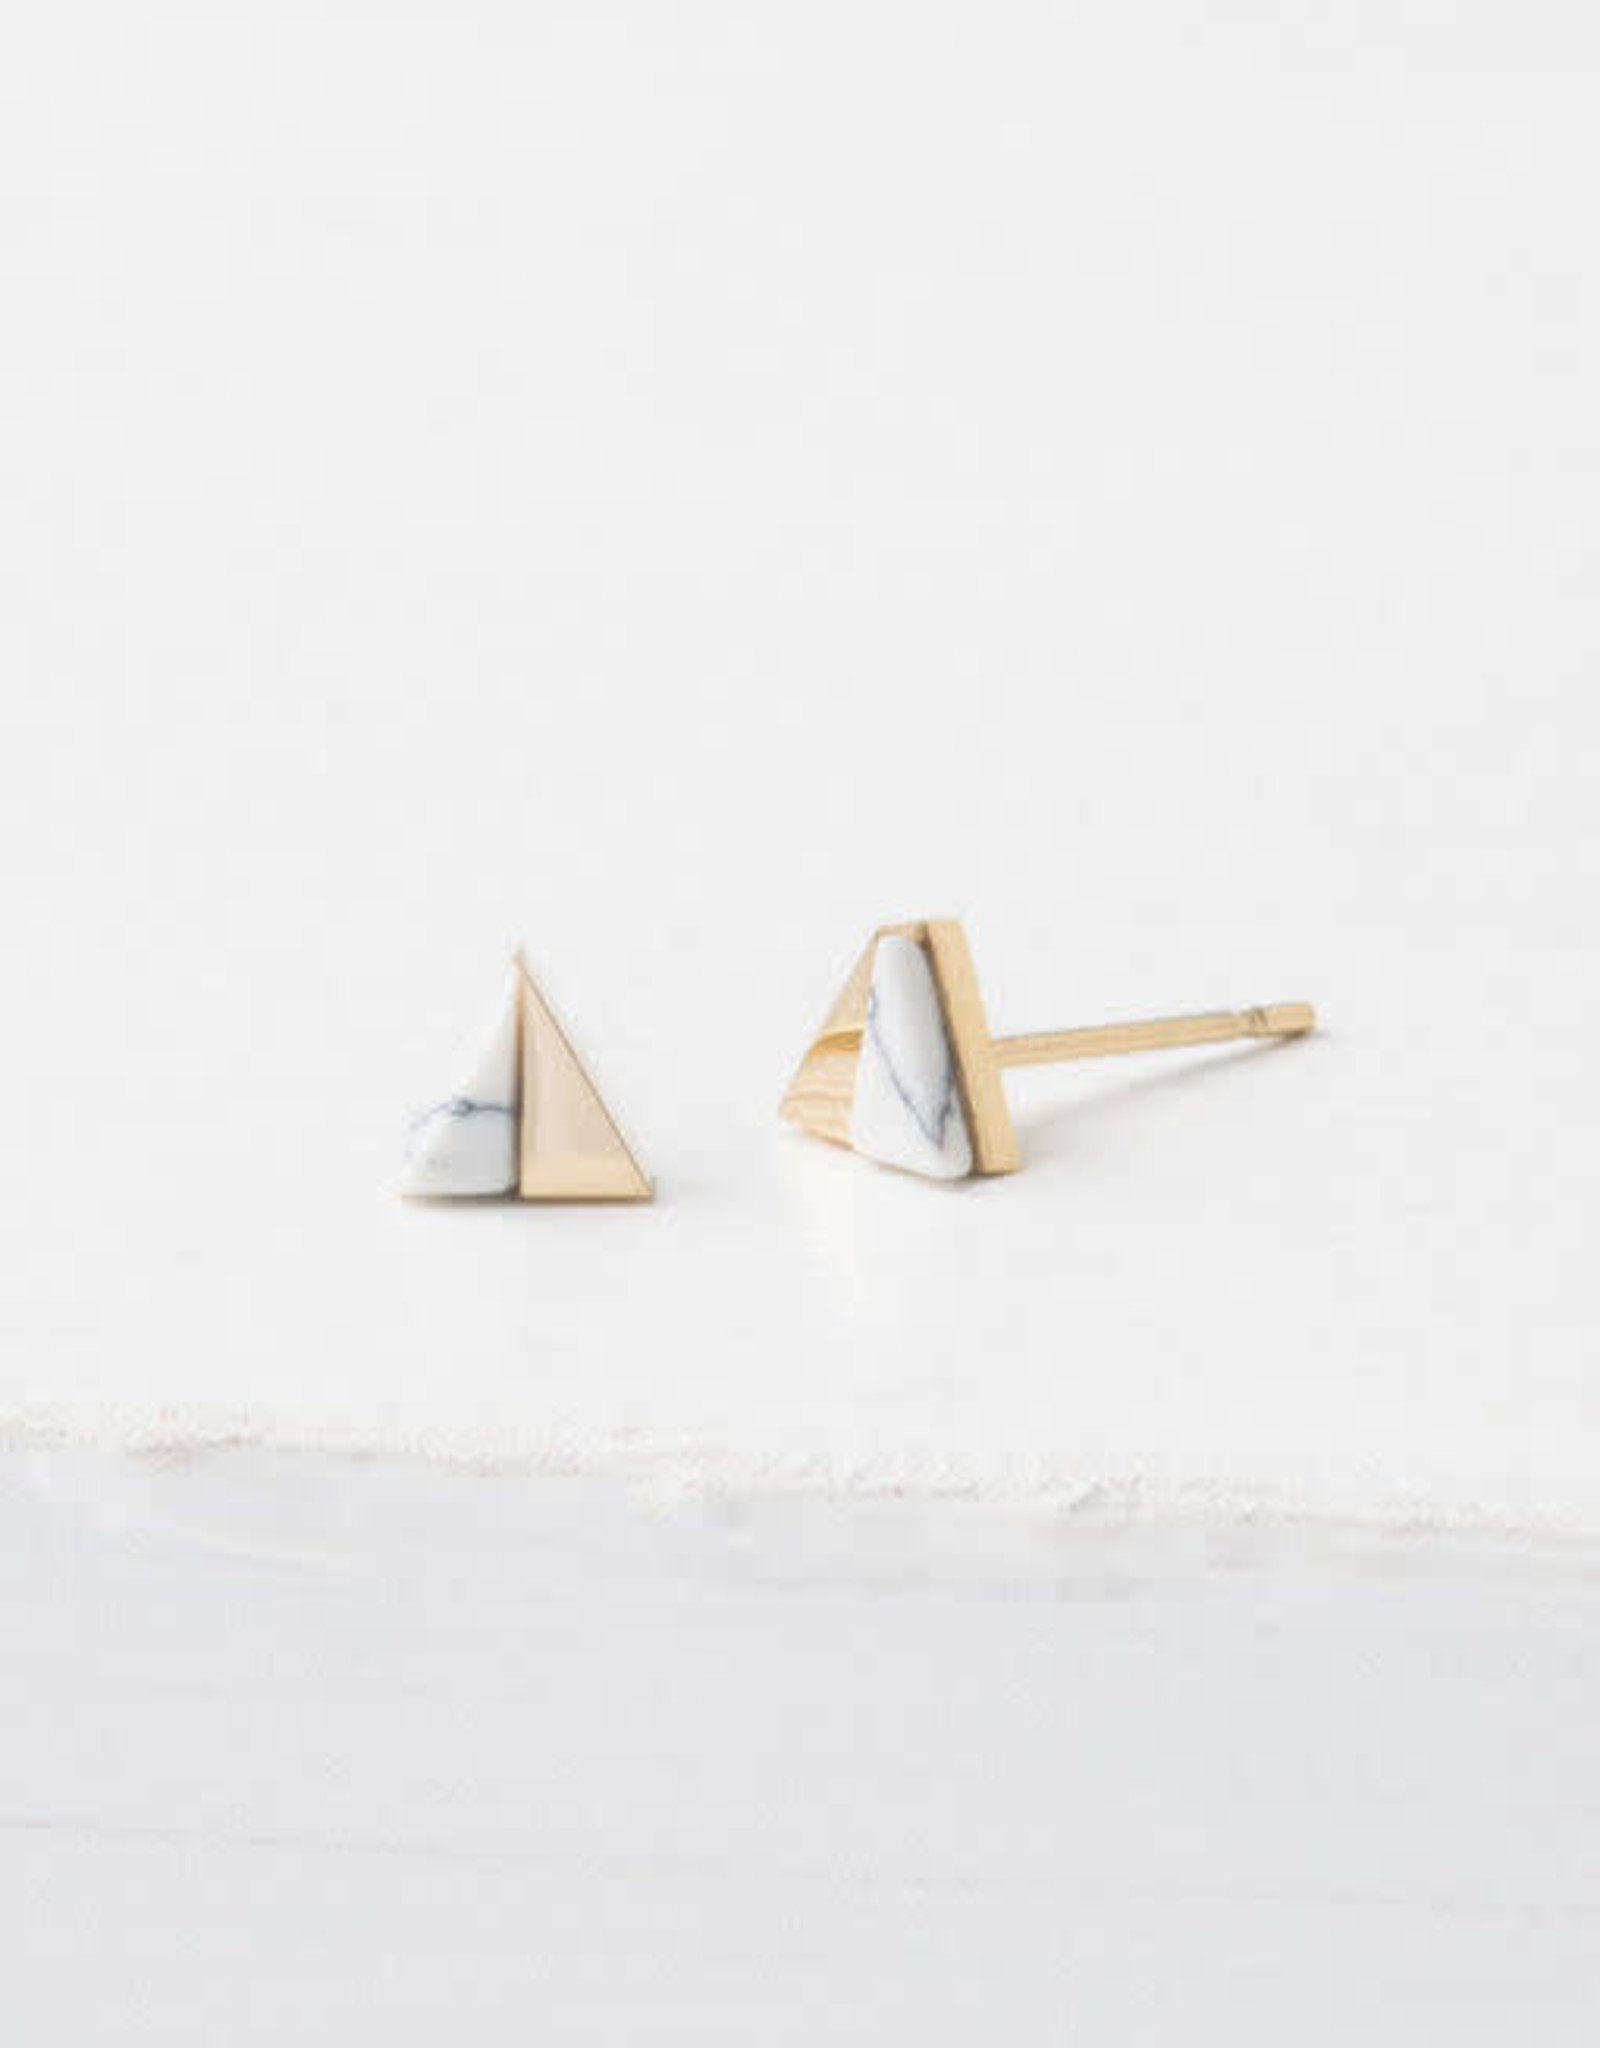 China, Cassia Gold and White Stud Earrings